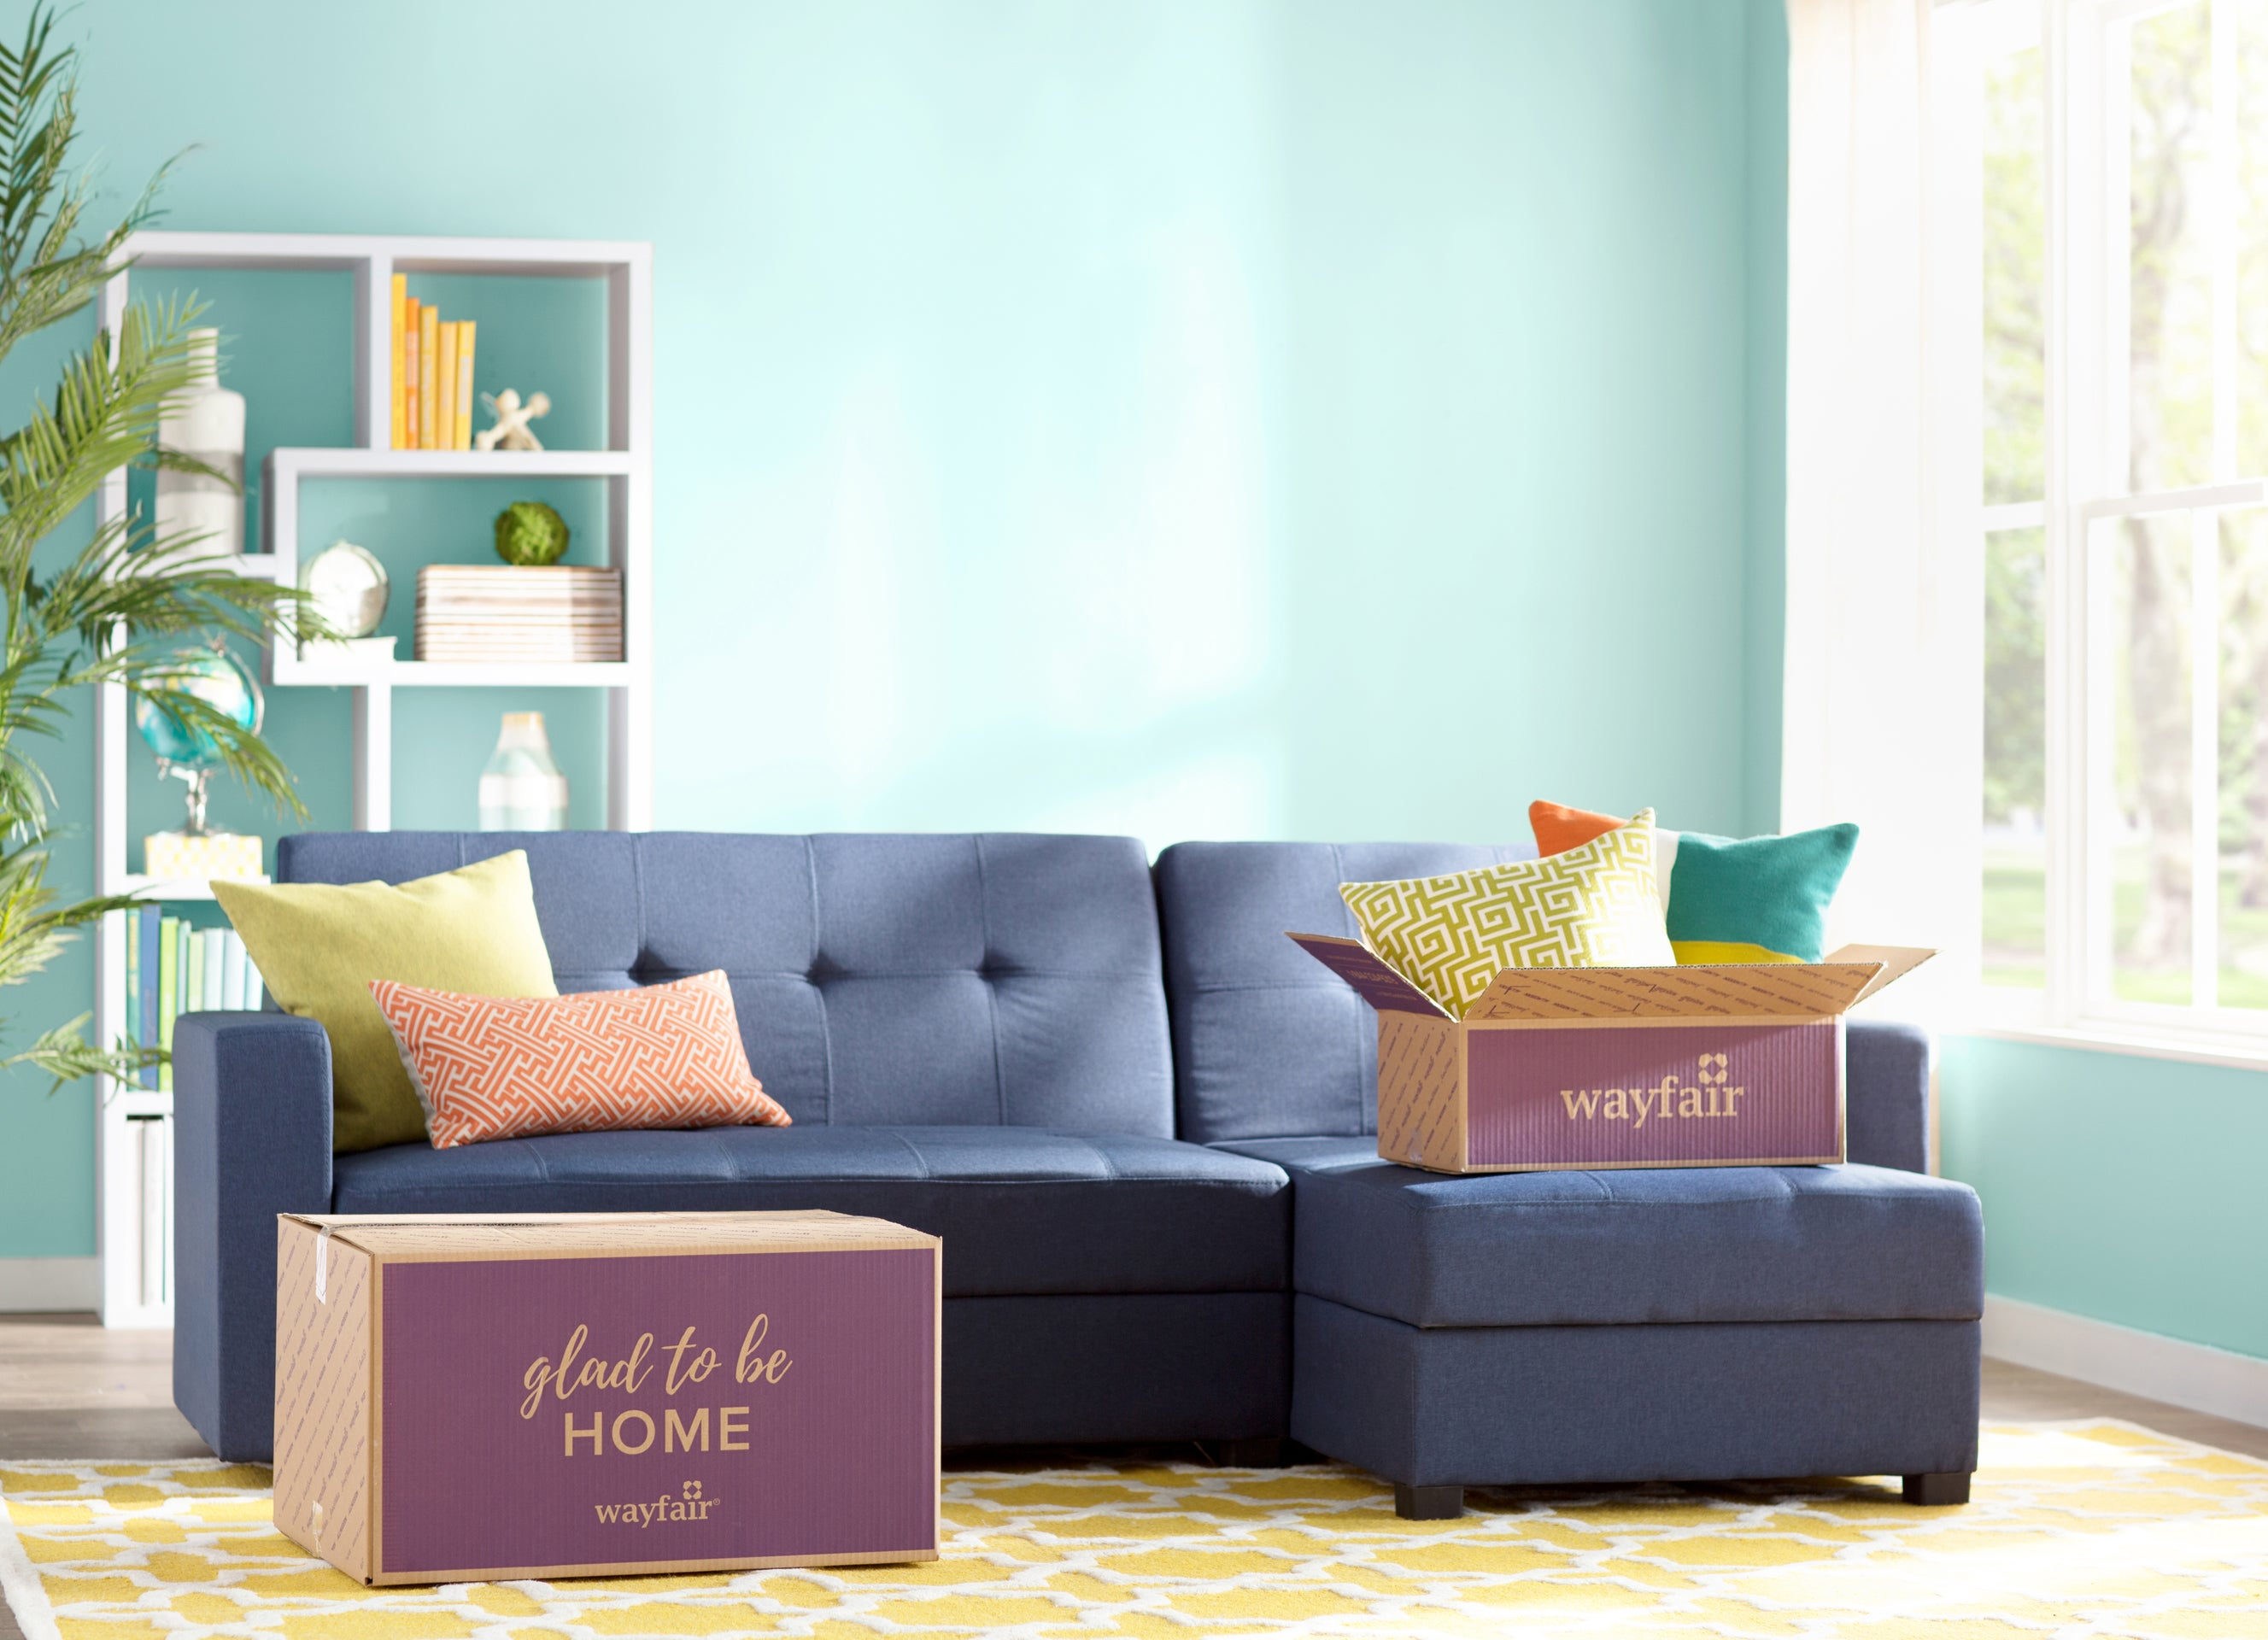 A living room with Wayfair boxes on the floor and couch.